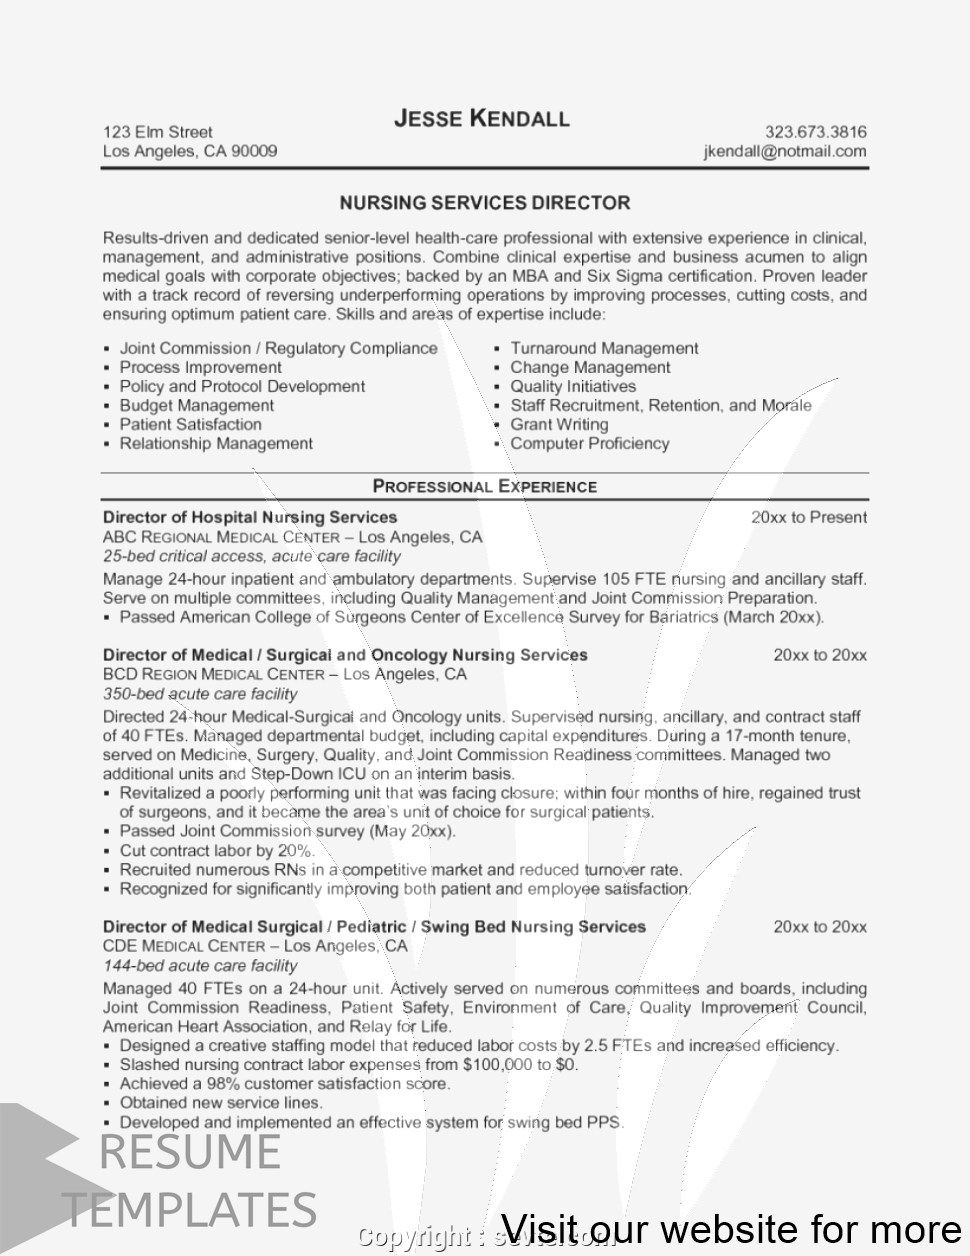 resume builder free for freshers in 2020 Resume cover